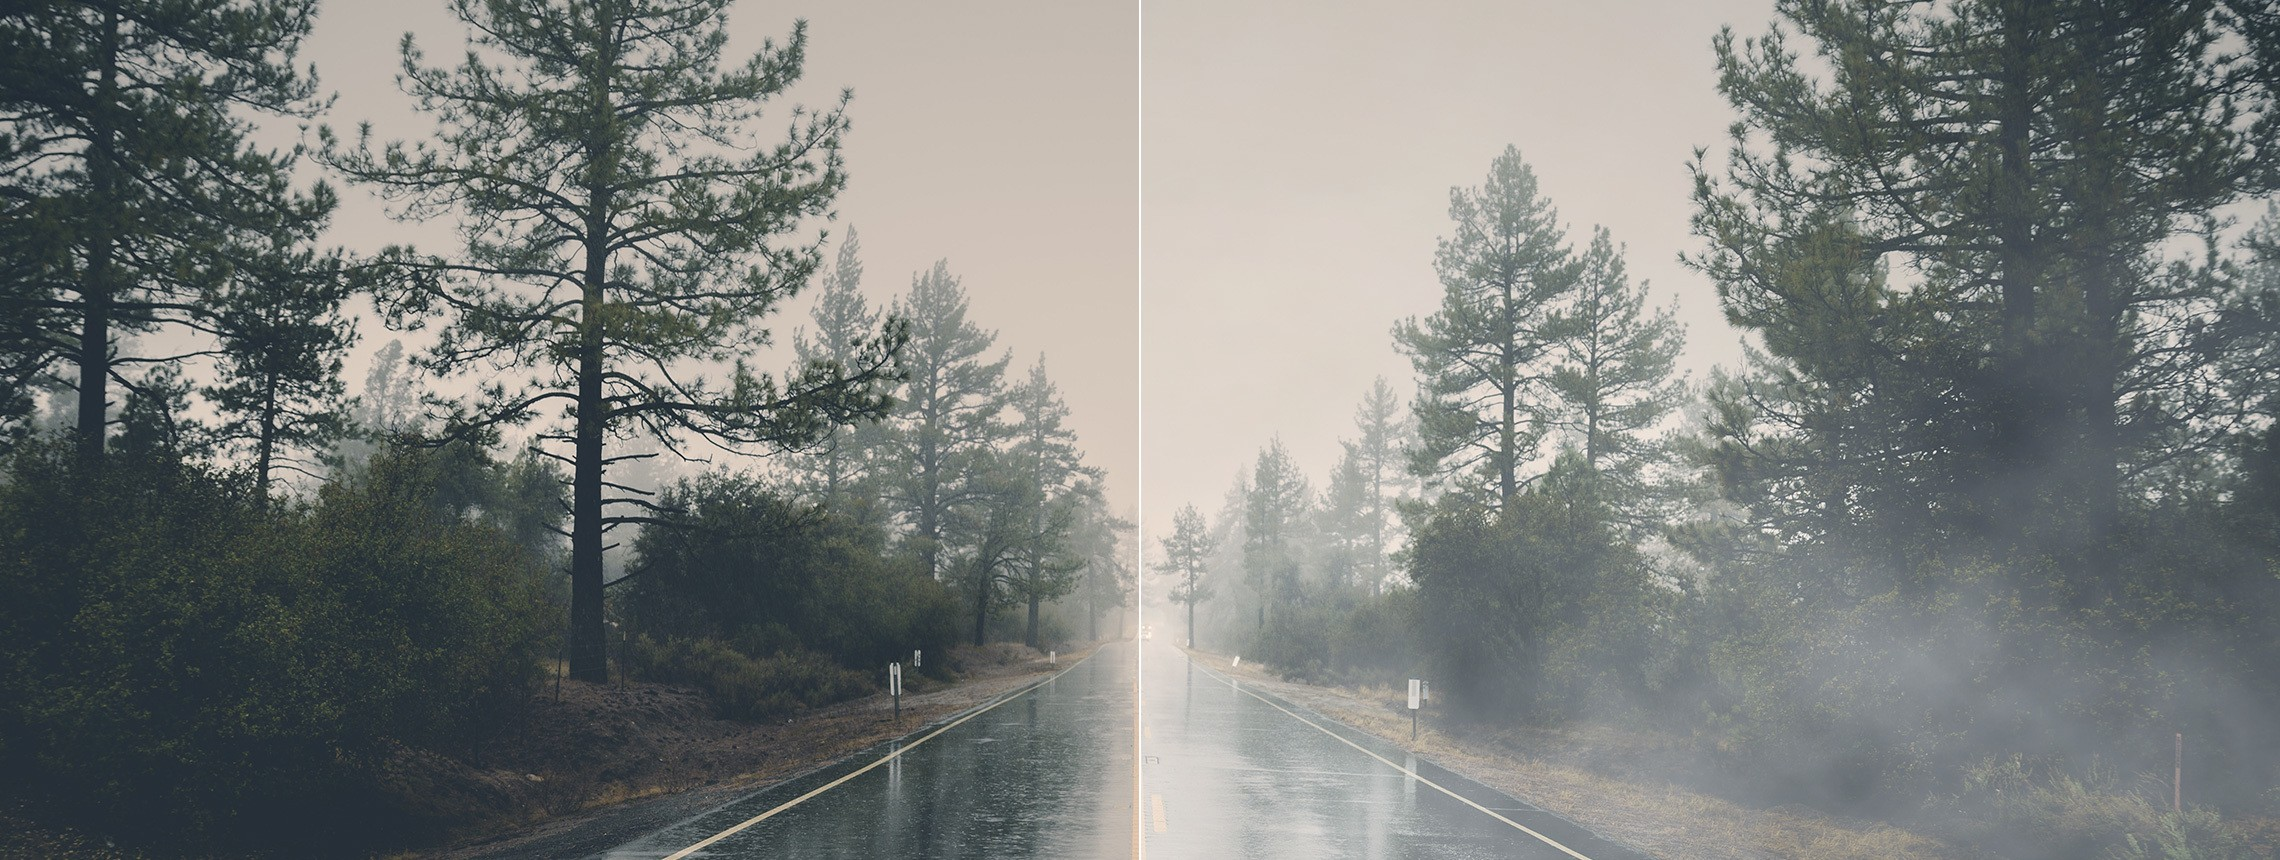 How to Add Easy Fog Overlays to Any Image